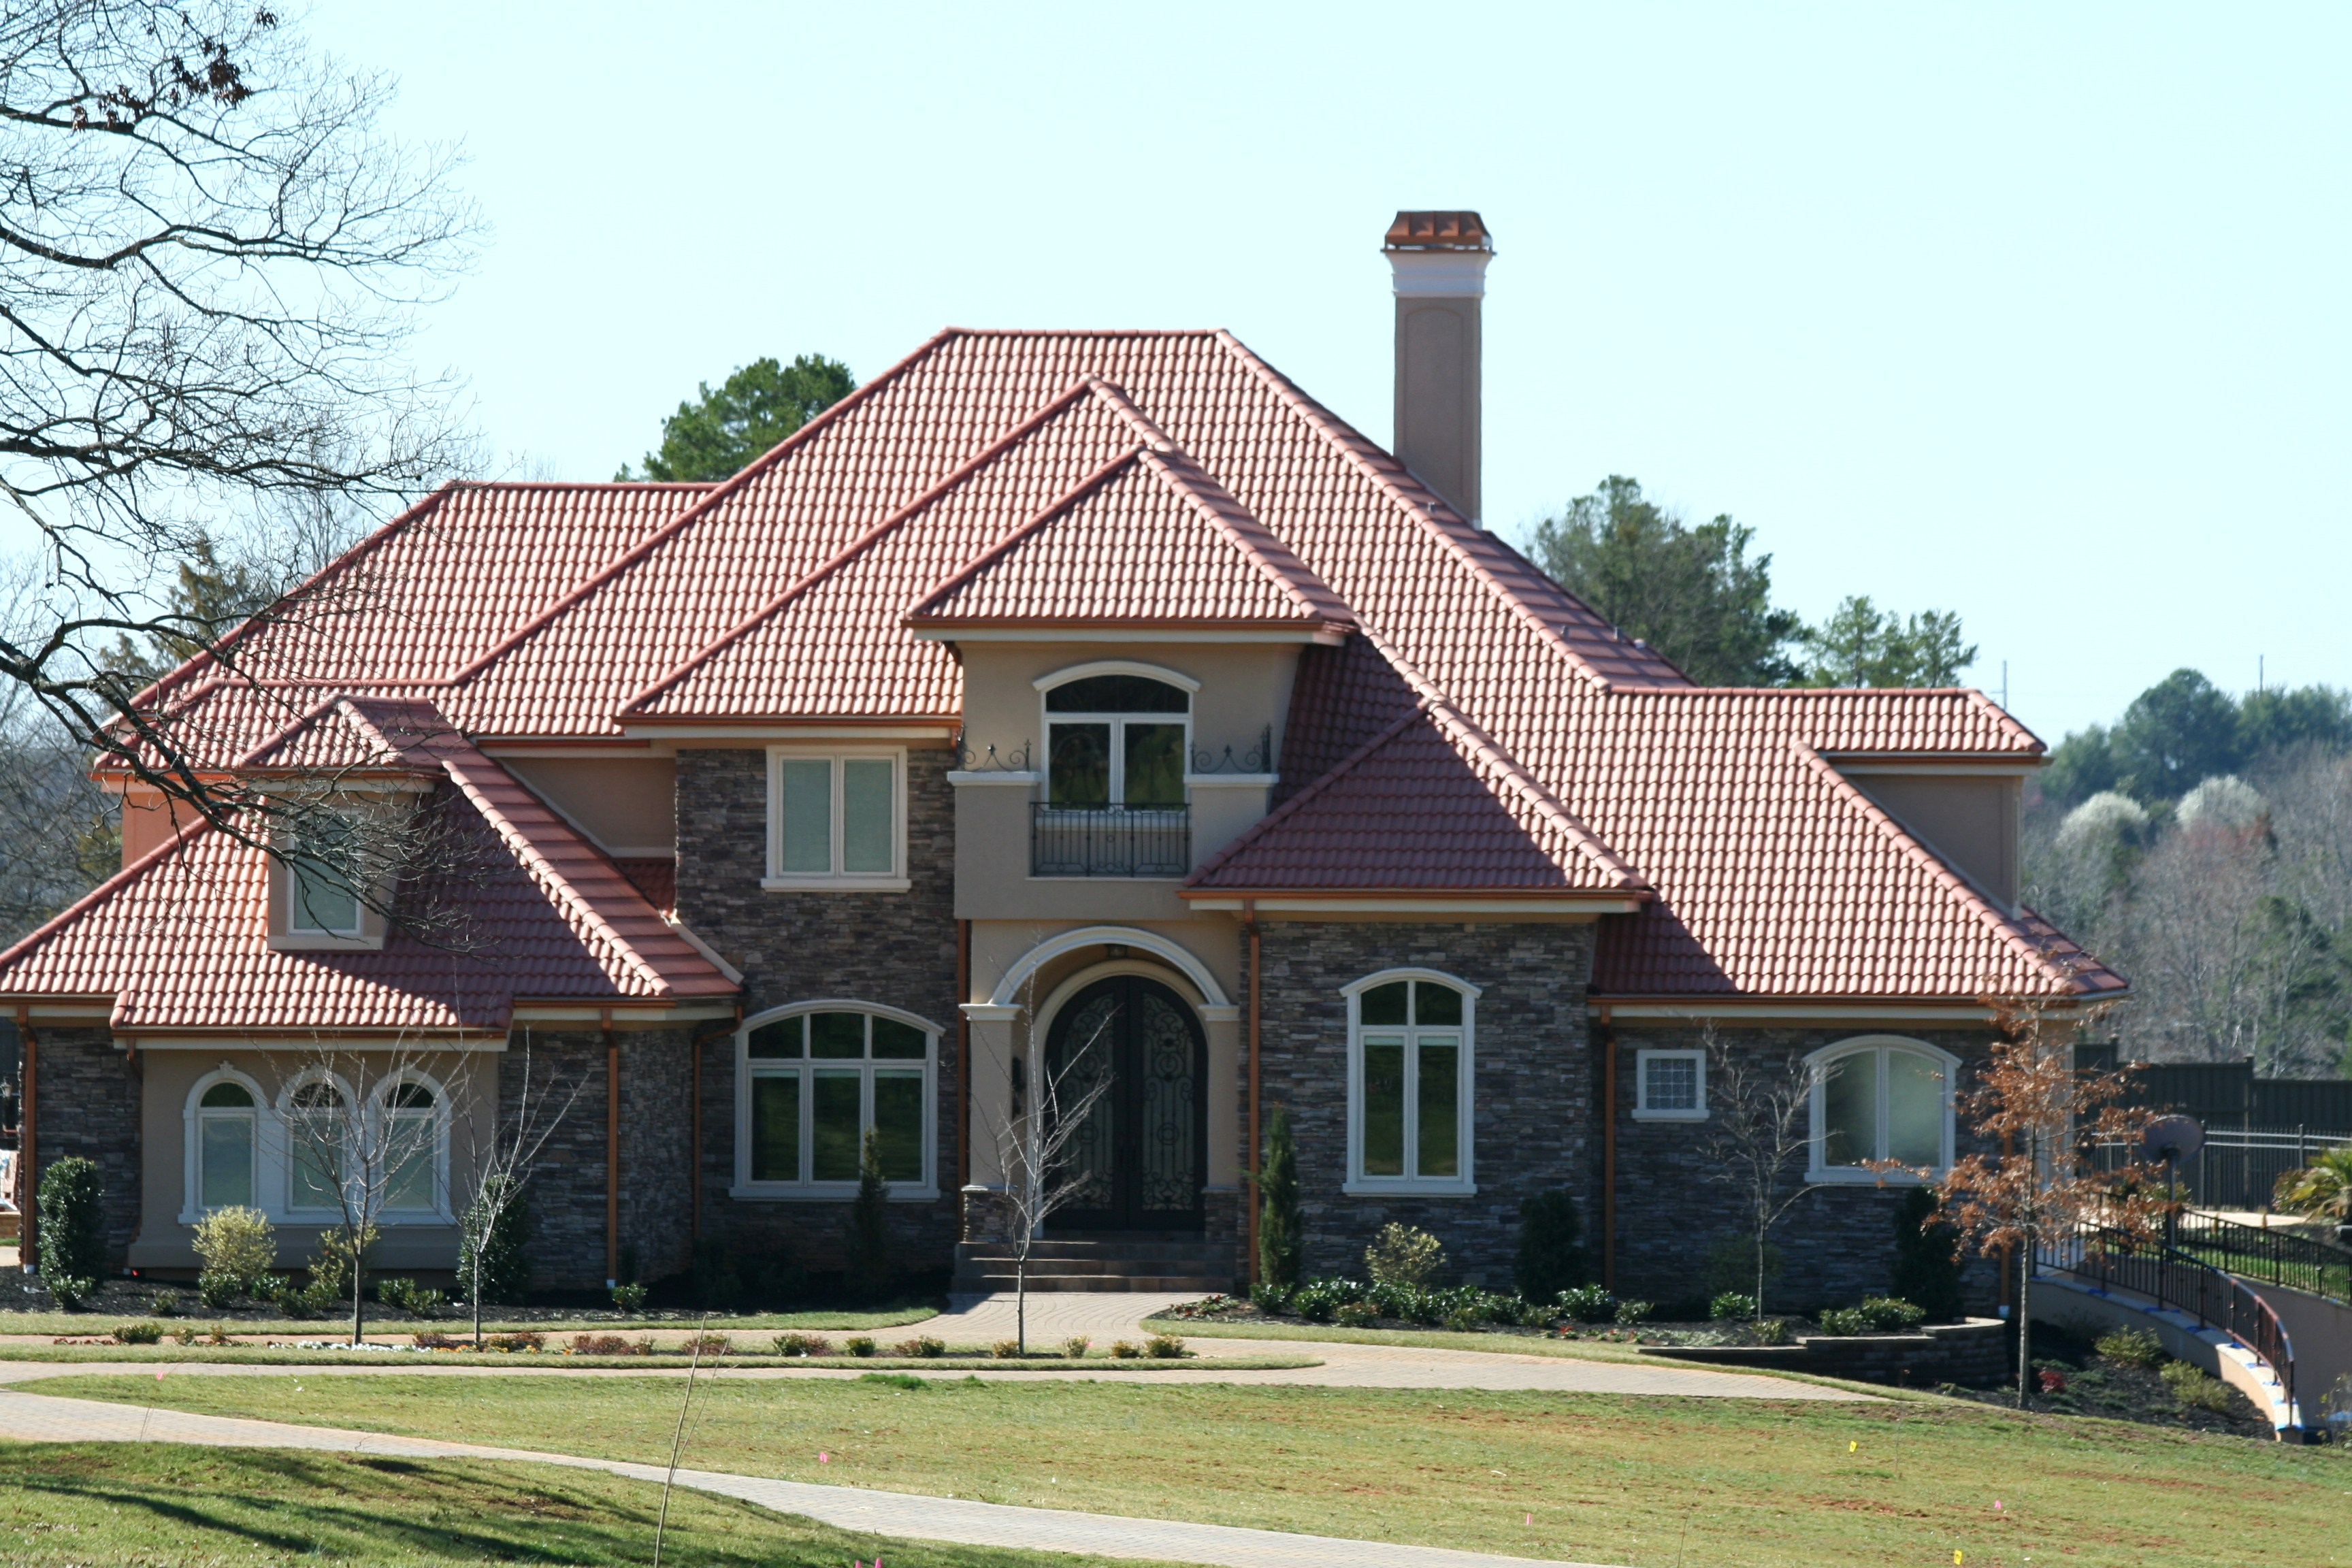 Roofing South Carolina